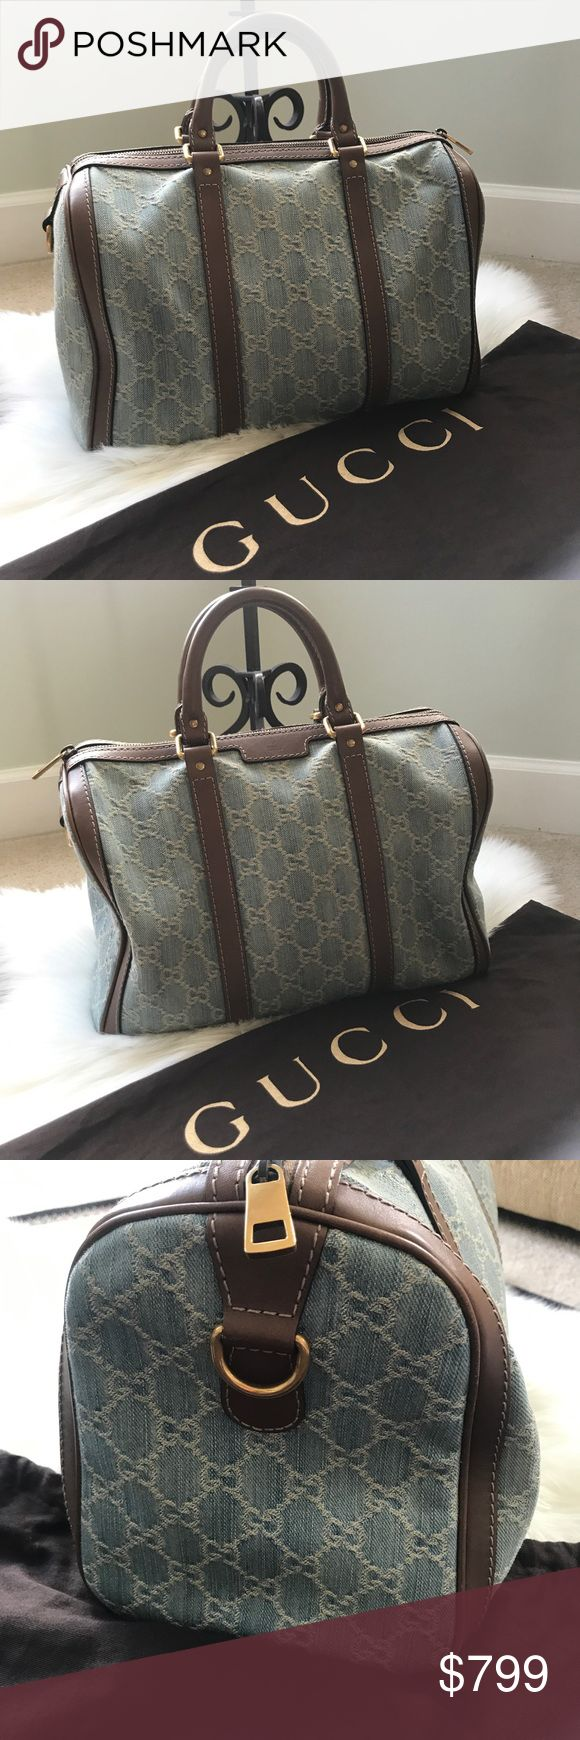 """Gucci Vintage Web GG Denim Boston Bag Authentic Gucci Vintage Web GG Denim bag in very good condition.  Denim and Brown Leather.  Top Zip Closure.  Gold Hardware.  Just some sign of wear on the inside.  Comes with Dust Bag Only. No authenticity card included but the code is pictured.  Double handles with 3 1/2"""" Drop.  No long Strap.  I do not have it anymore.  Price is Firm. Gucci Bags Satchels"""